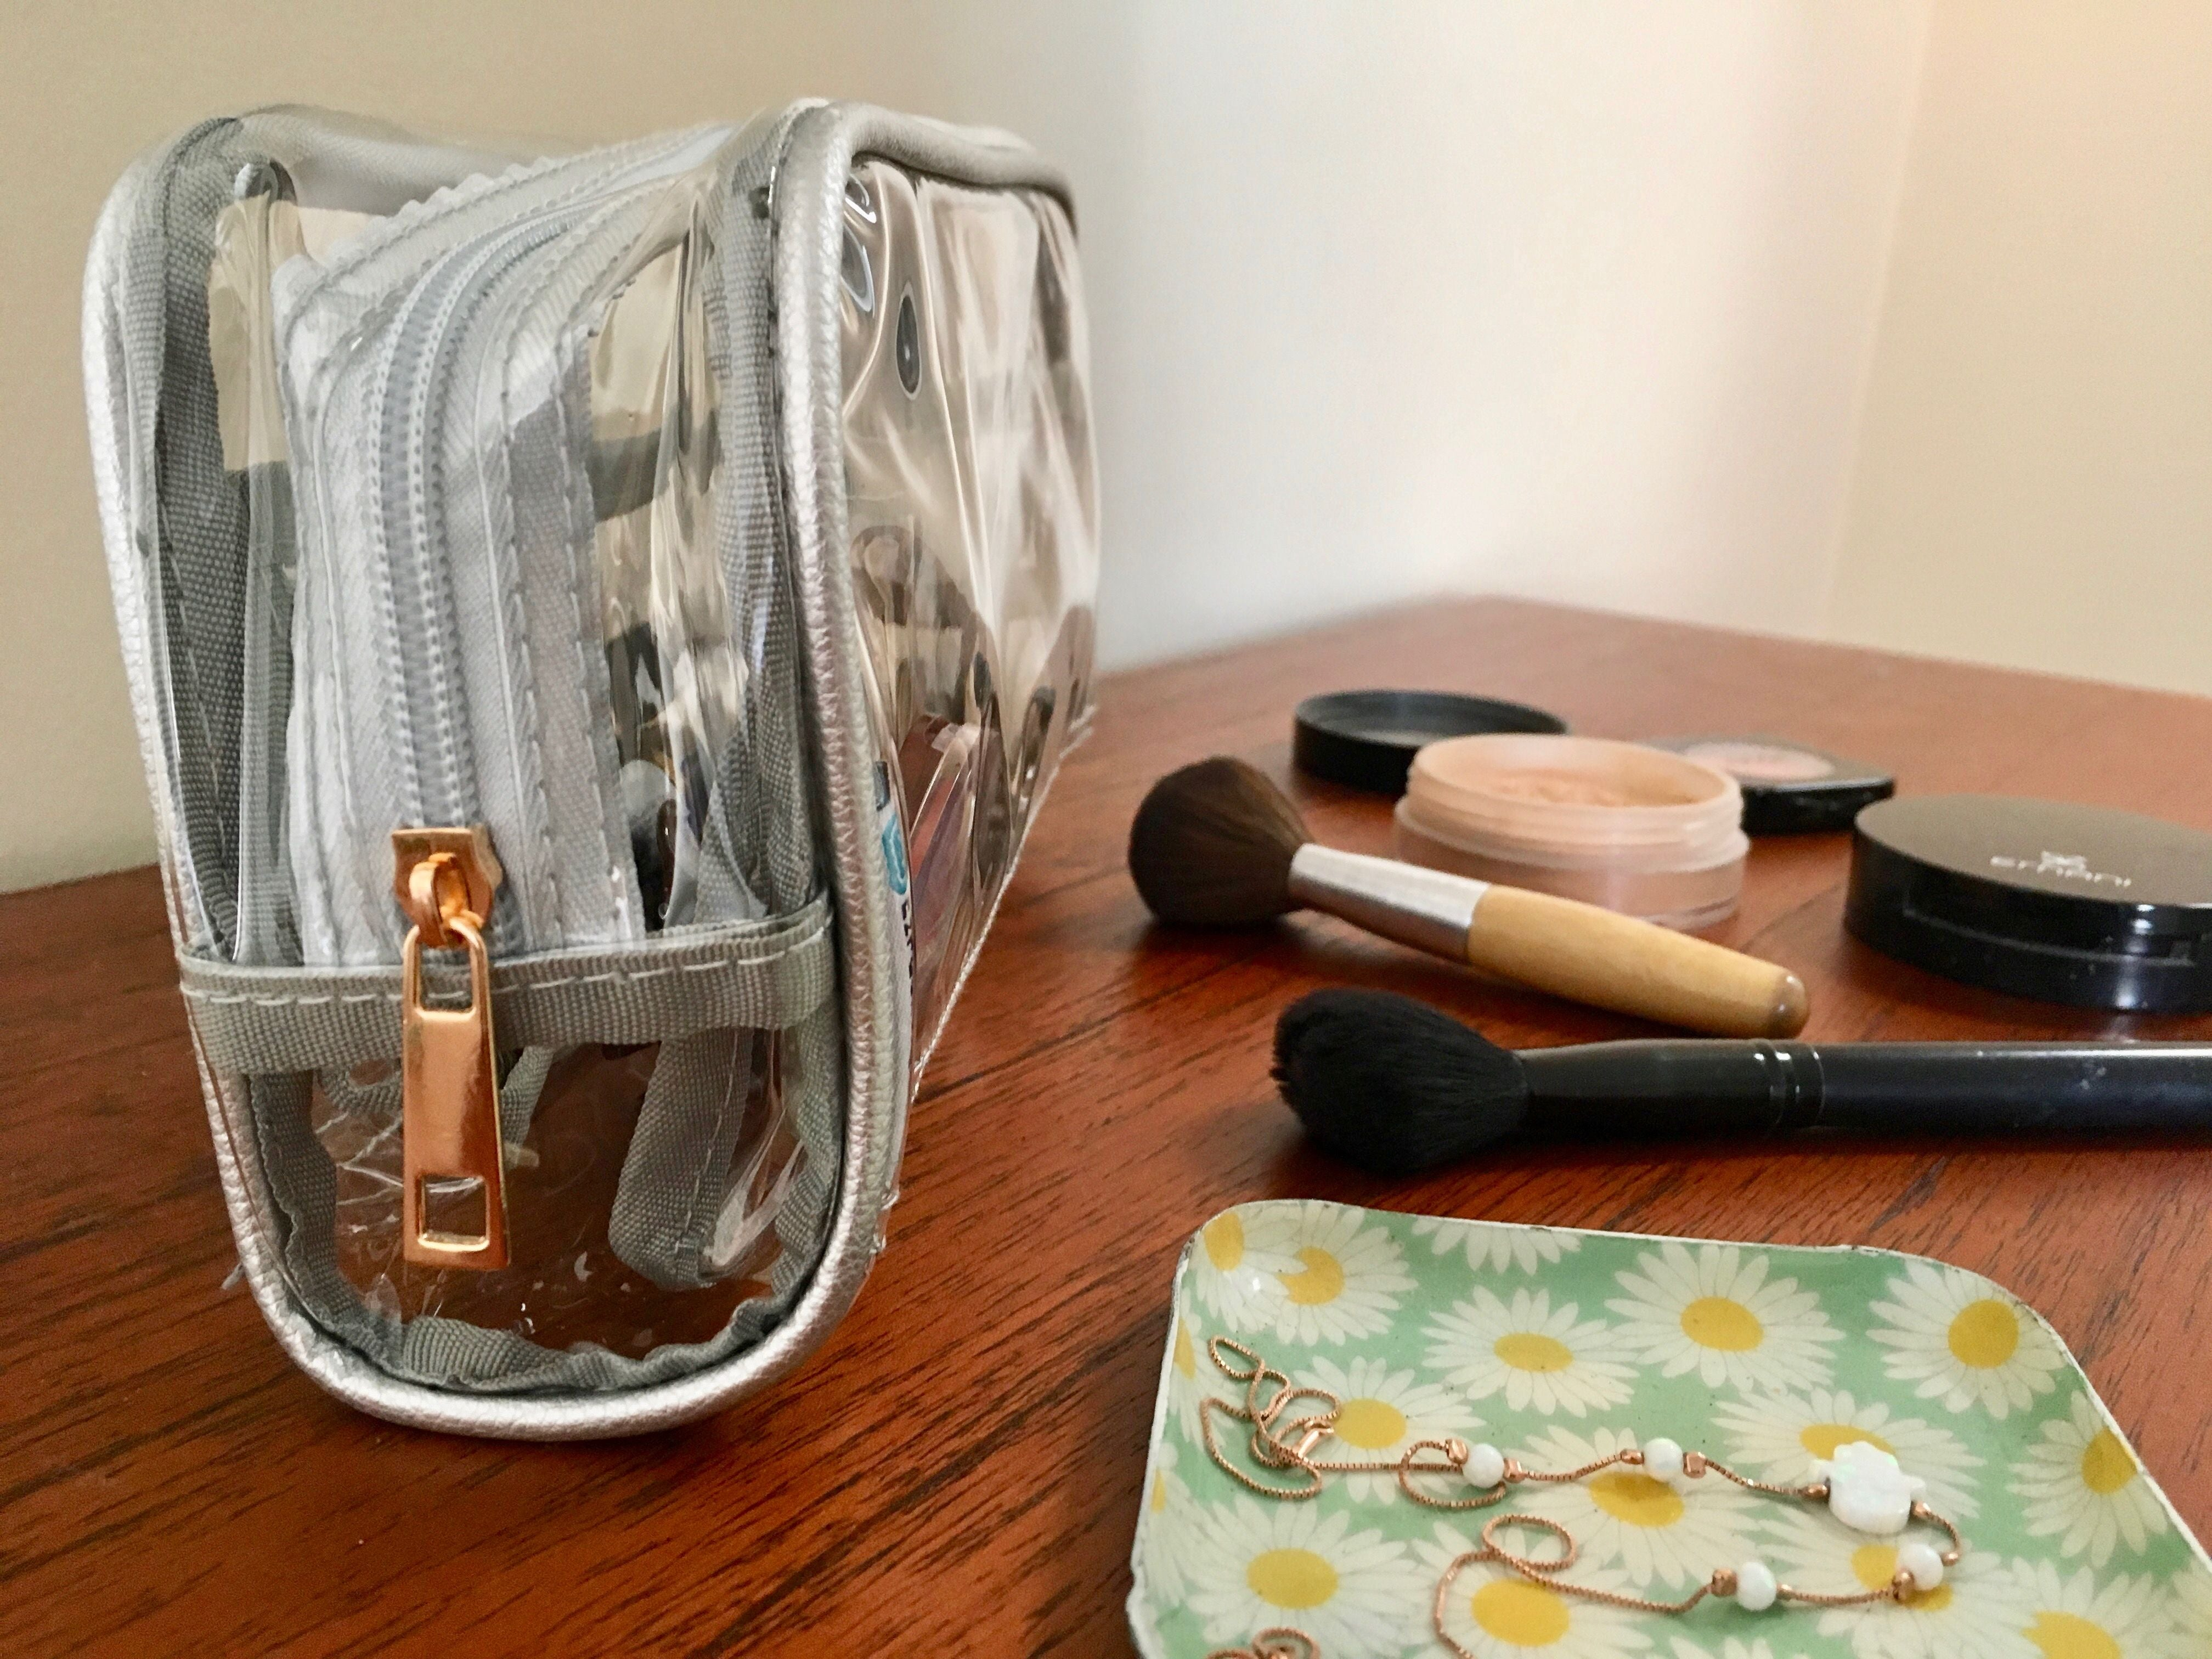 Clear makeup bag and tools on the table